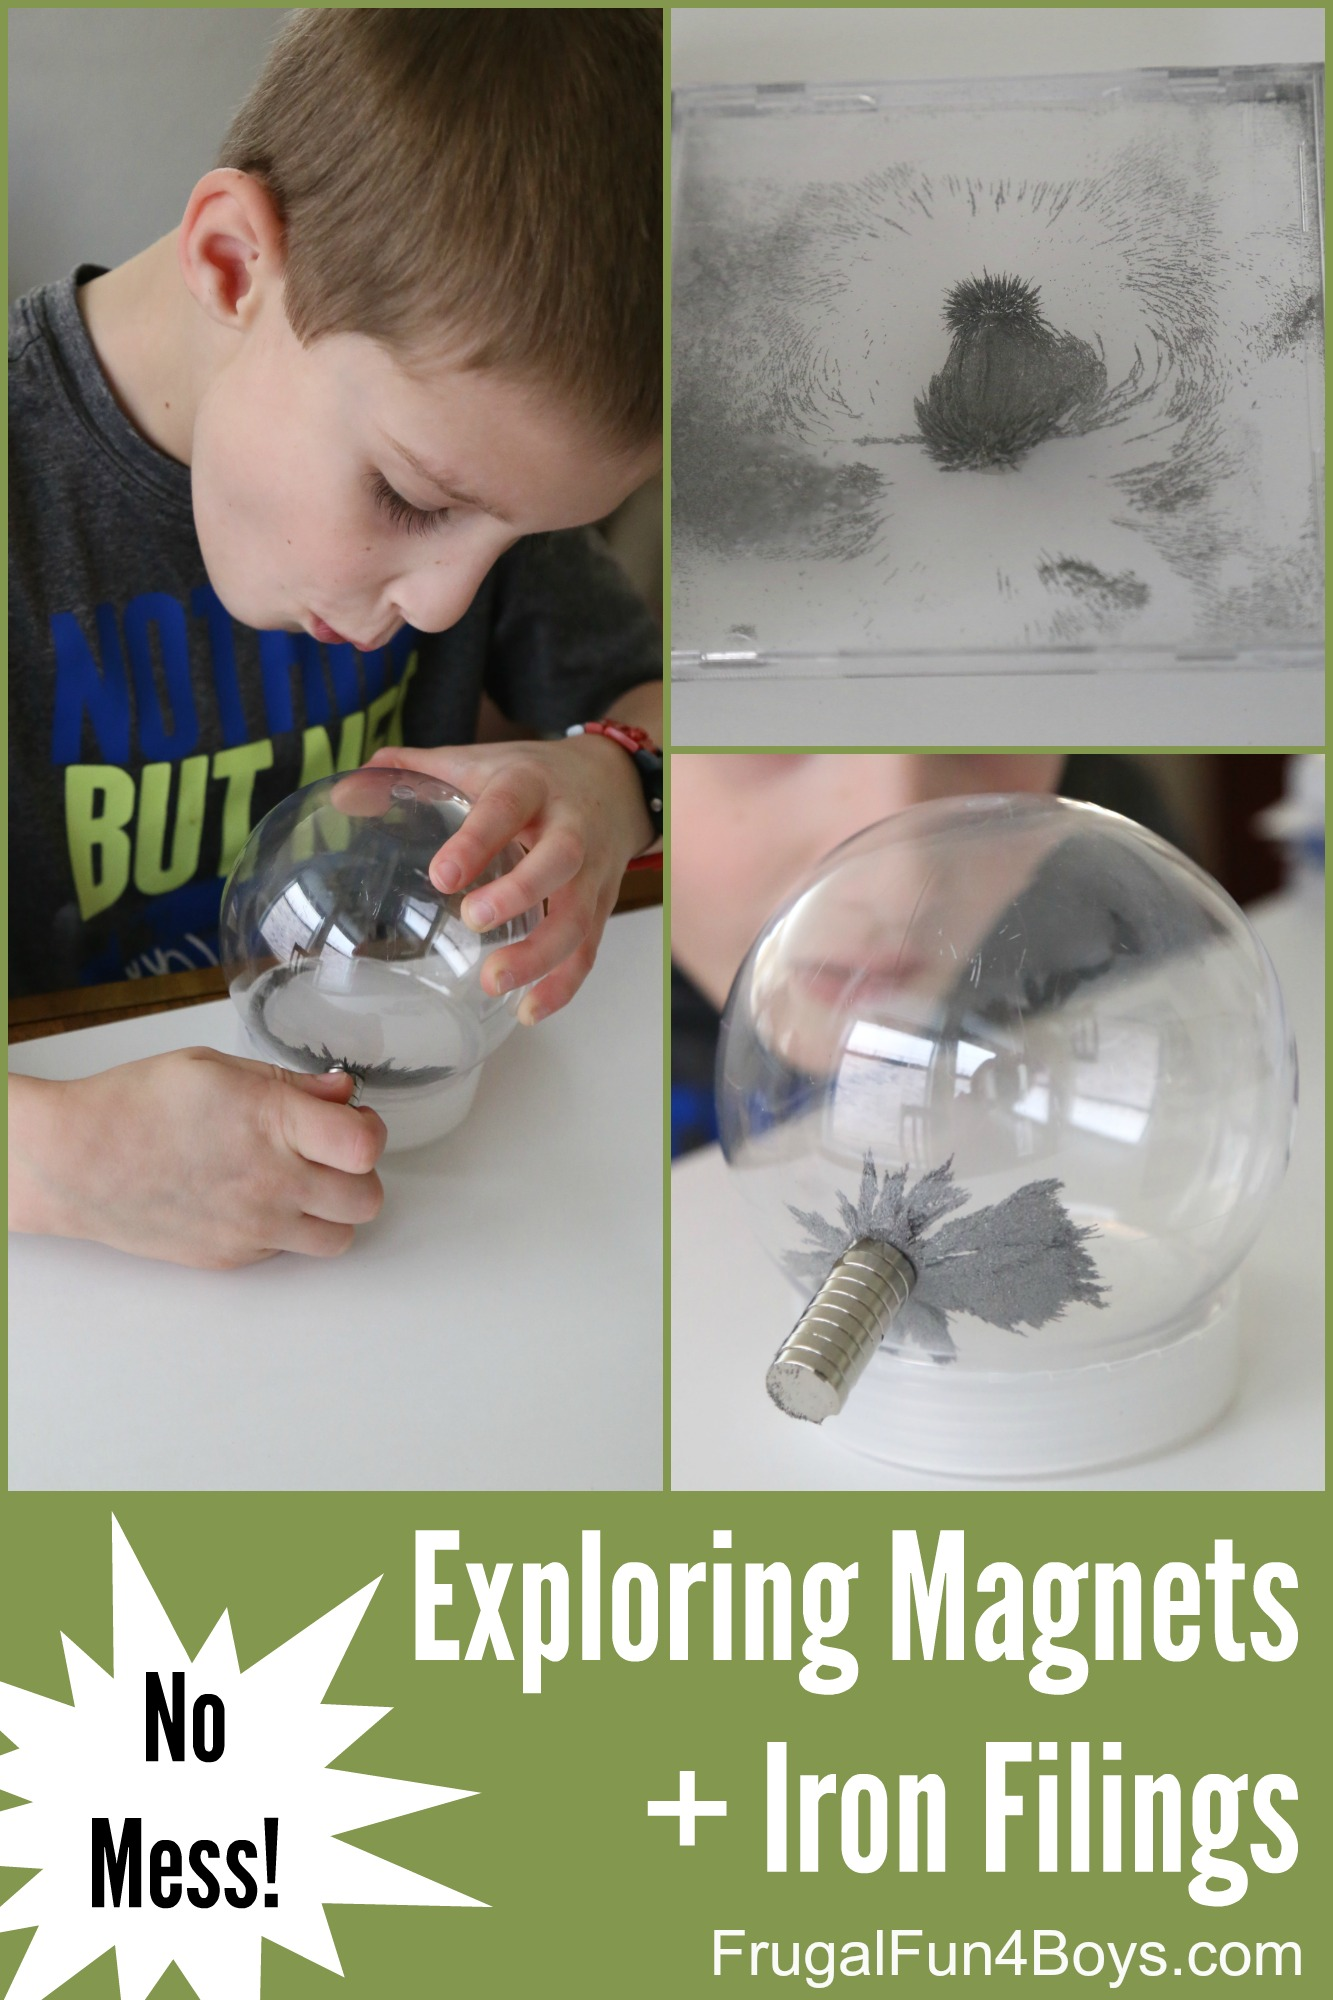 No Mess Science Explorations with Magnets and Iron Filings